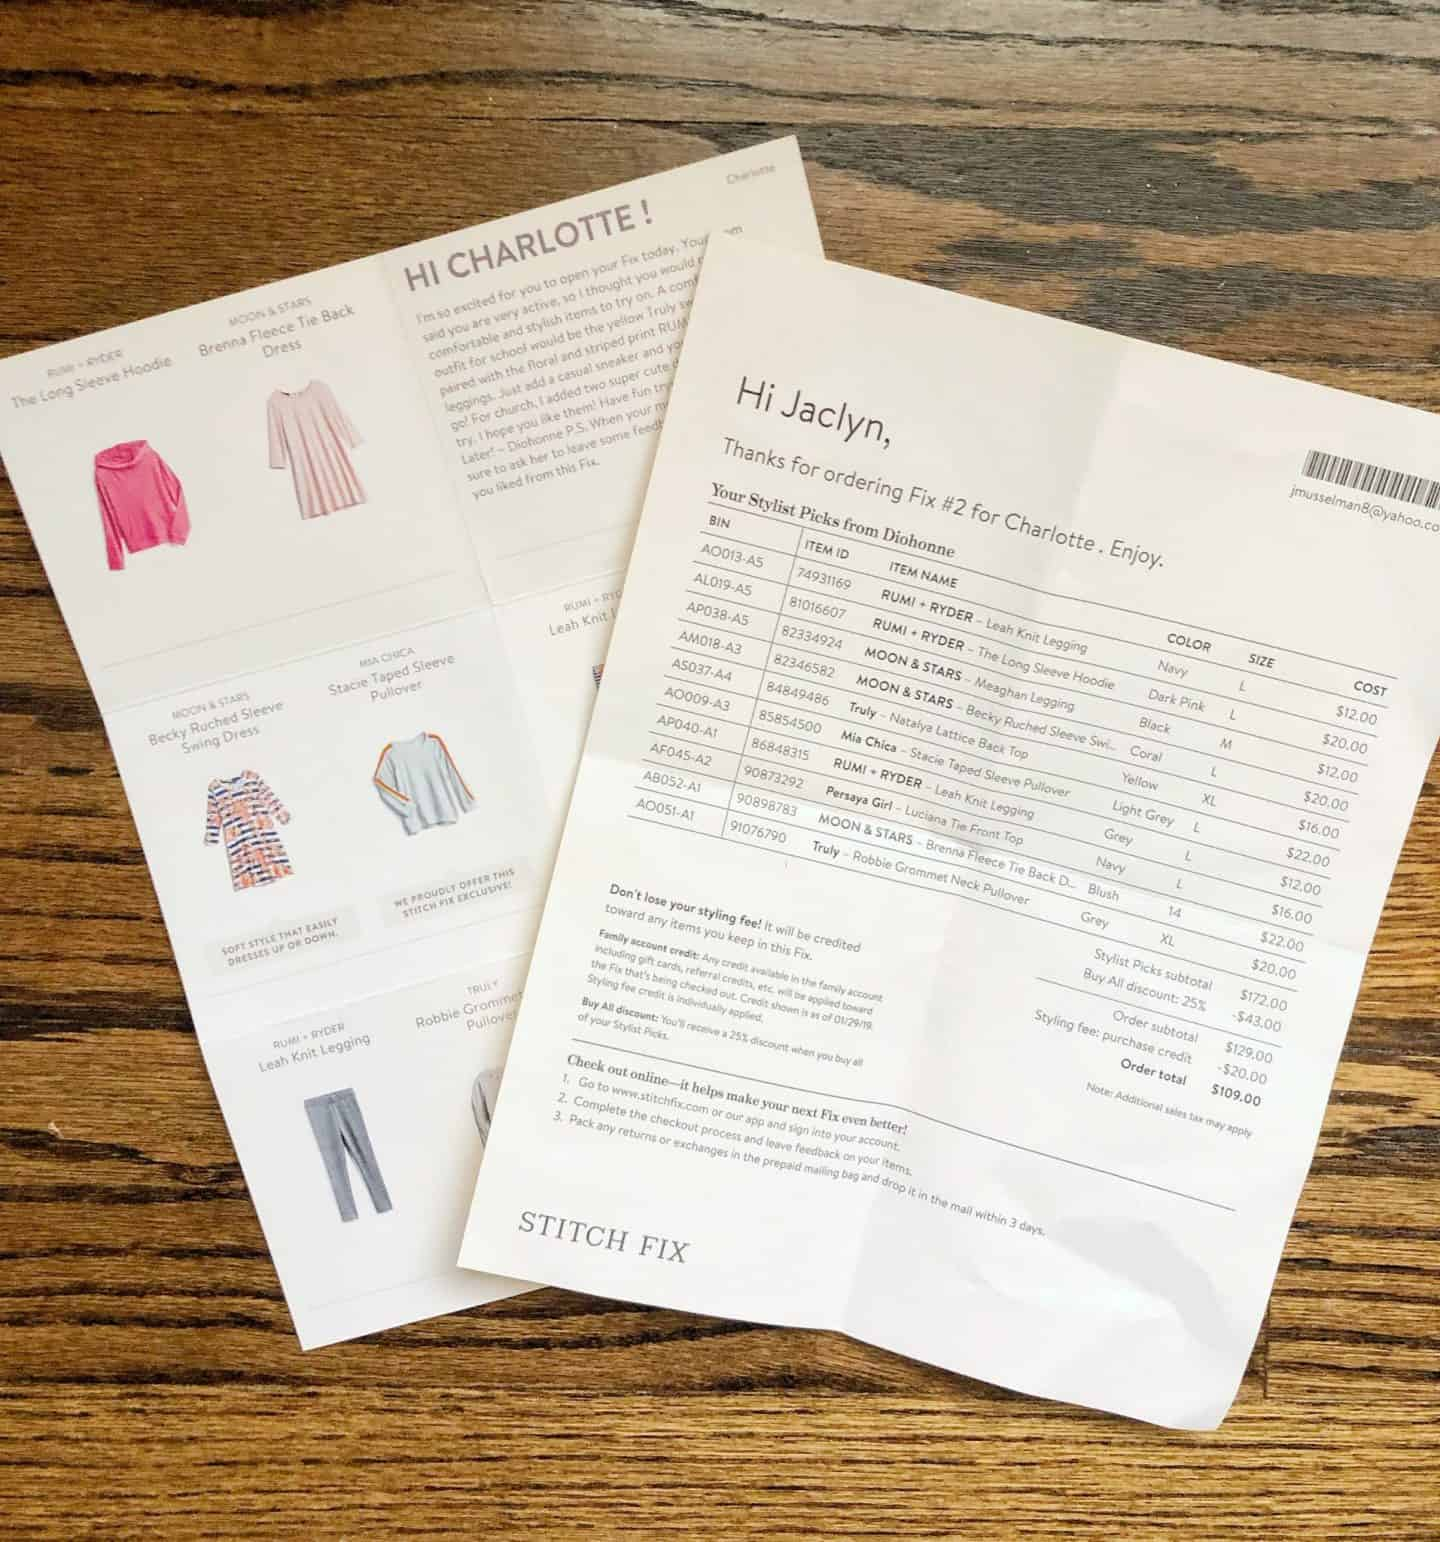 Stitch Fix Kids Clothing Review 2019 #kidsstyle #subscriptionbox #unboxing